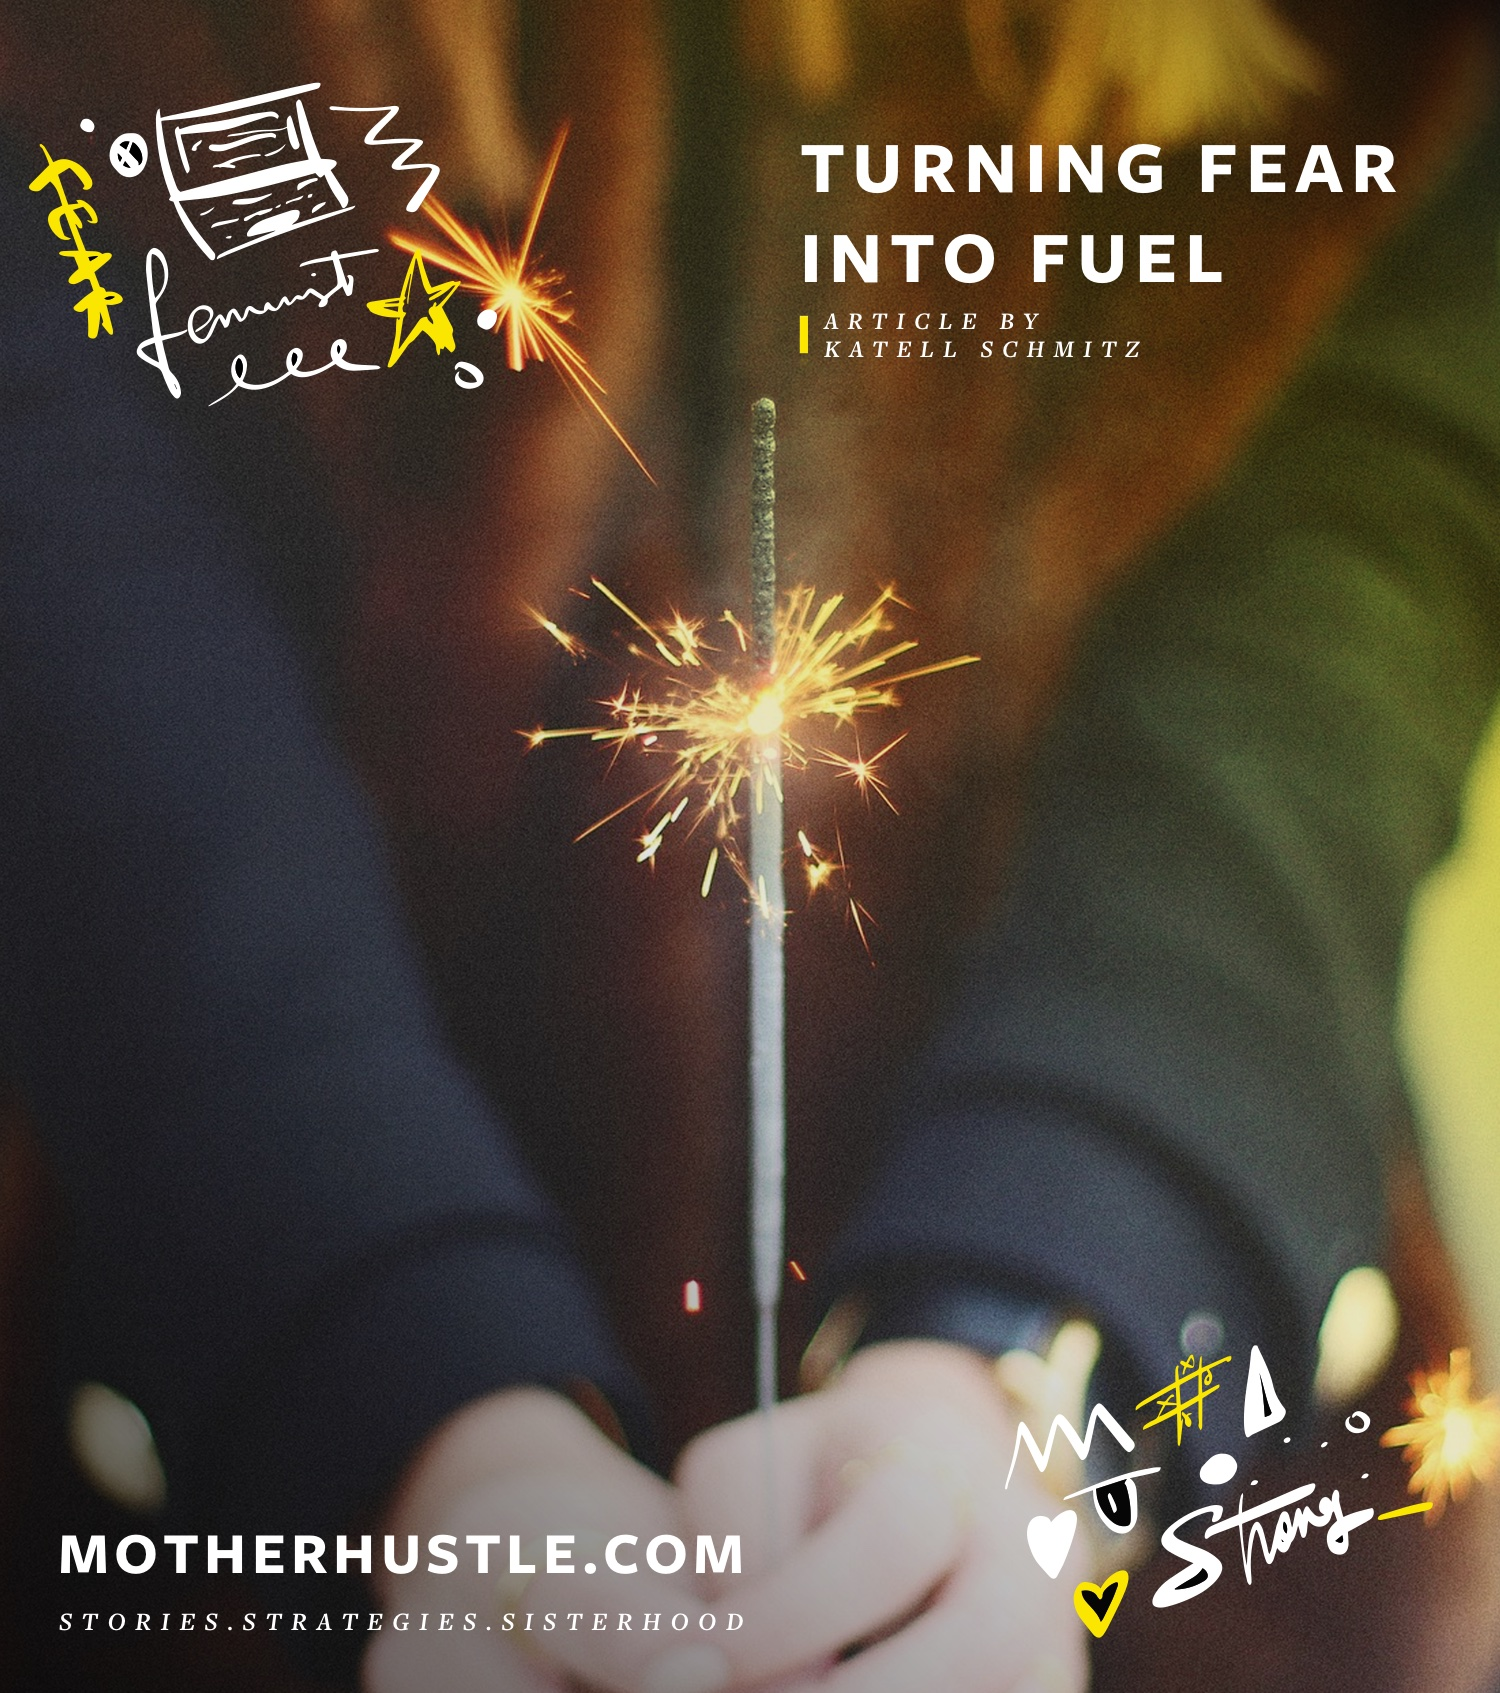 Turning Fear Into Fuel - by Katell Schmitz for MotherHustle